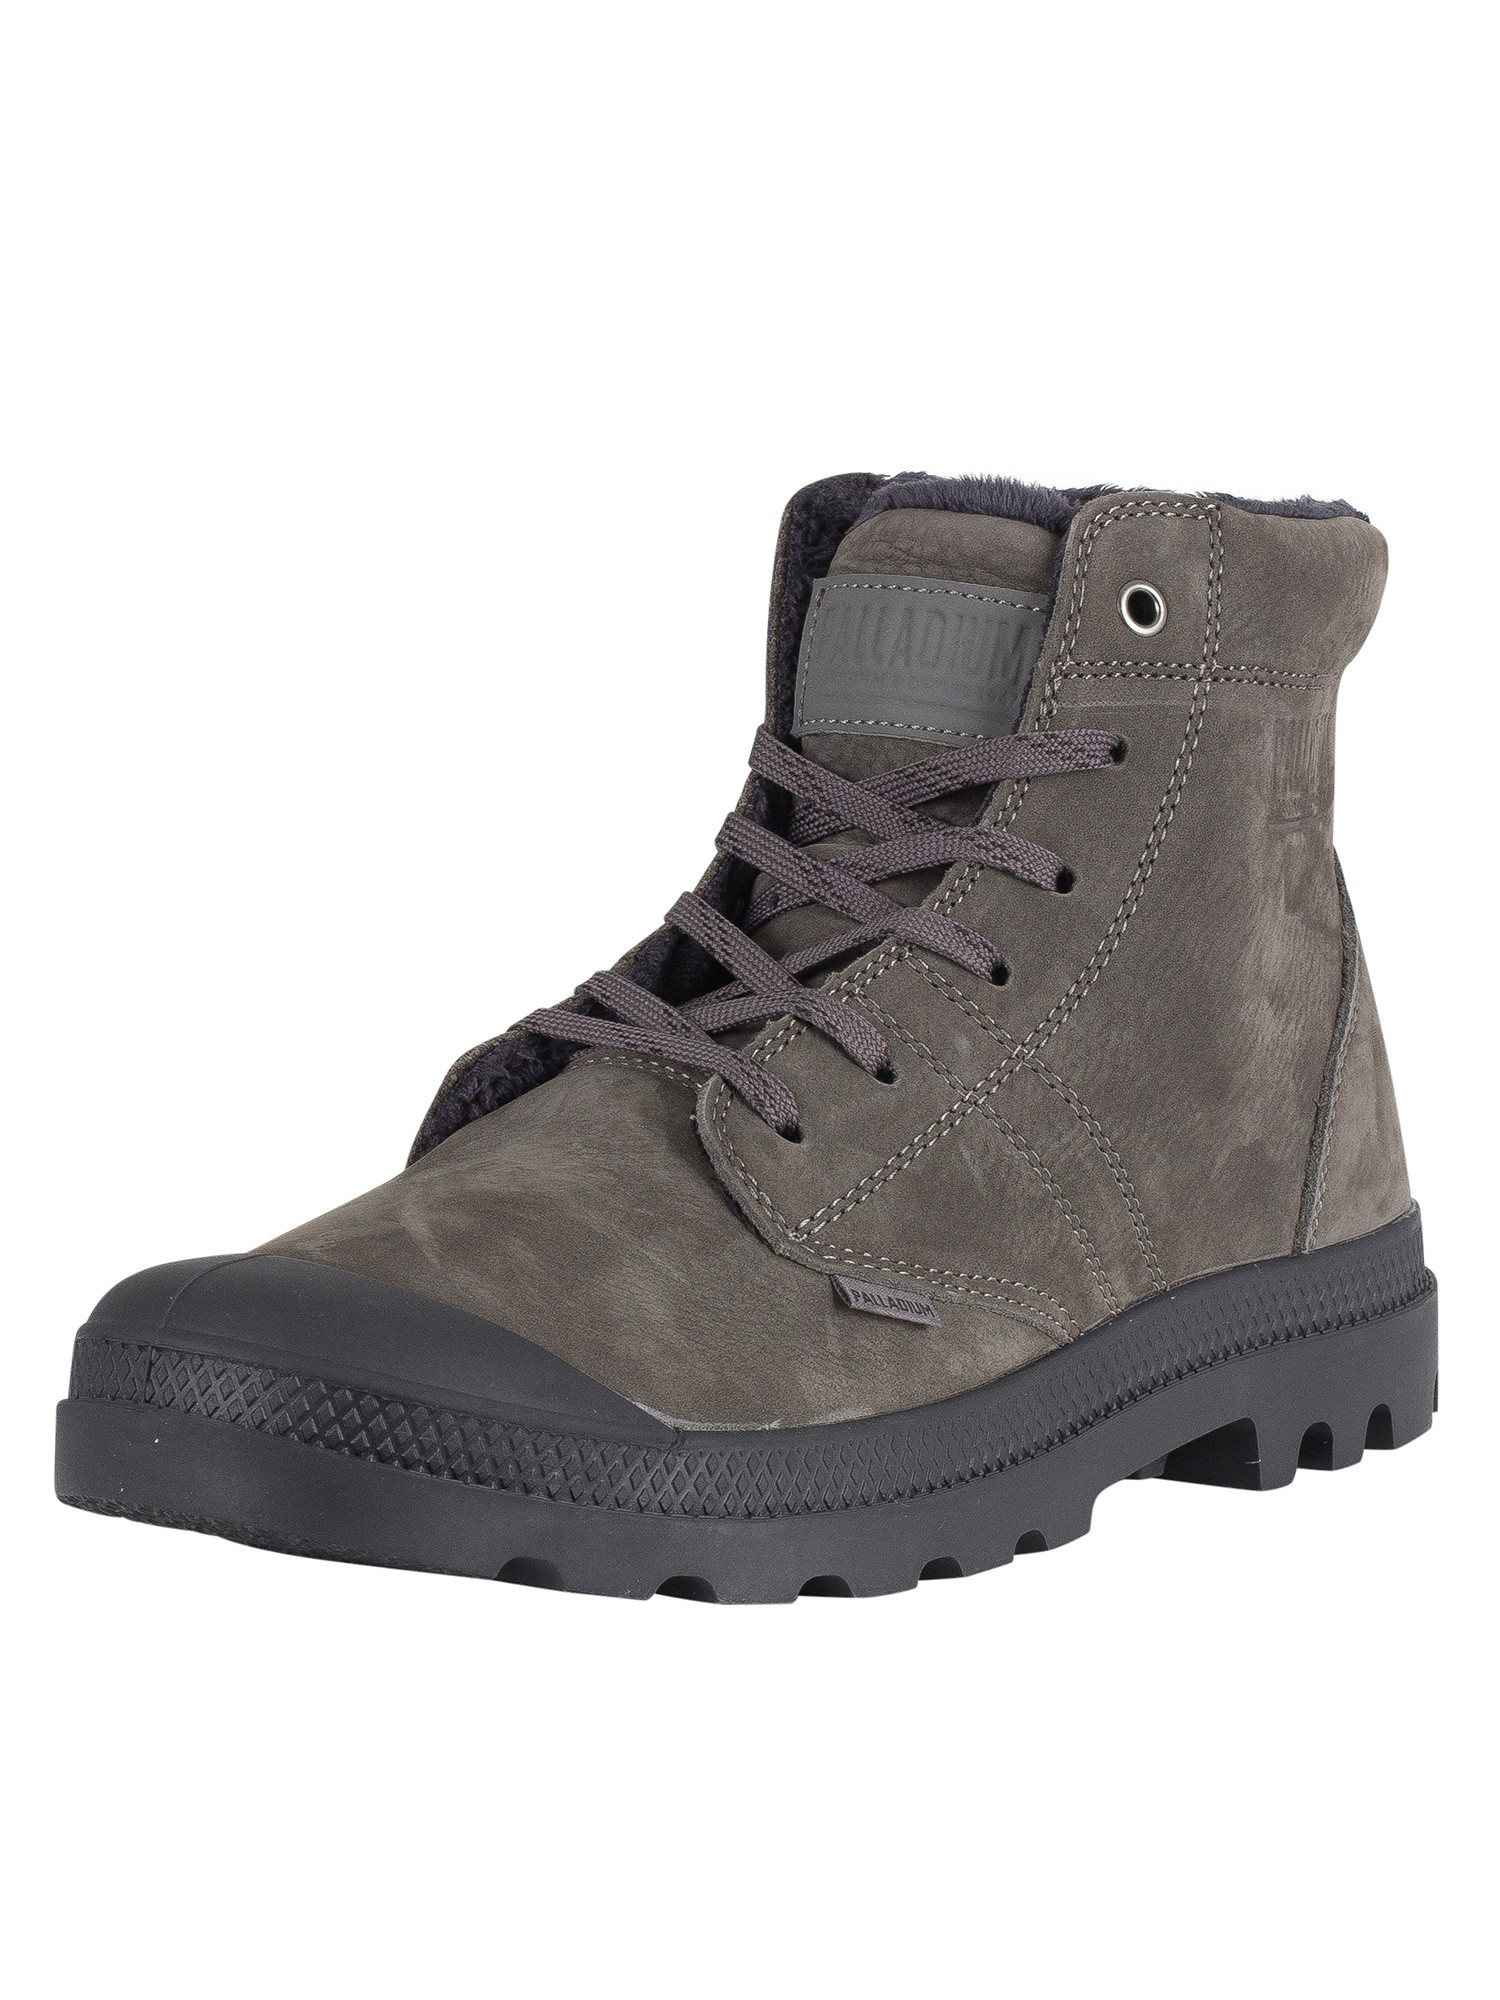 Palladium Pallabrousse LT Leather Boots - Gull Gray/Athracite